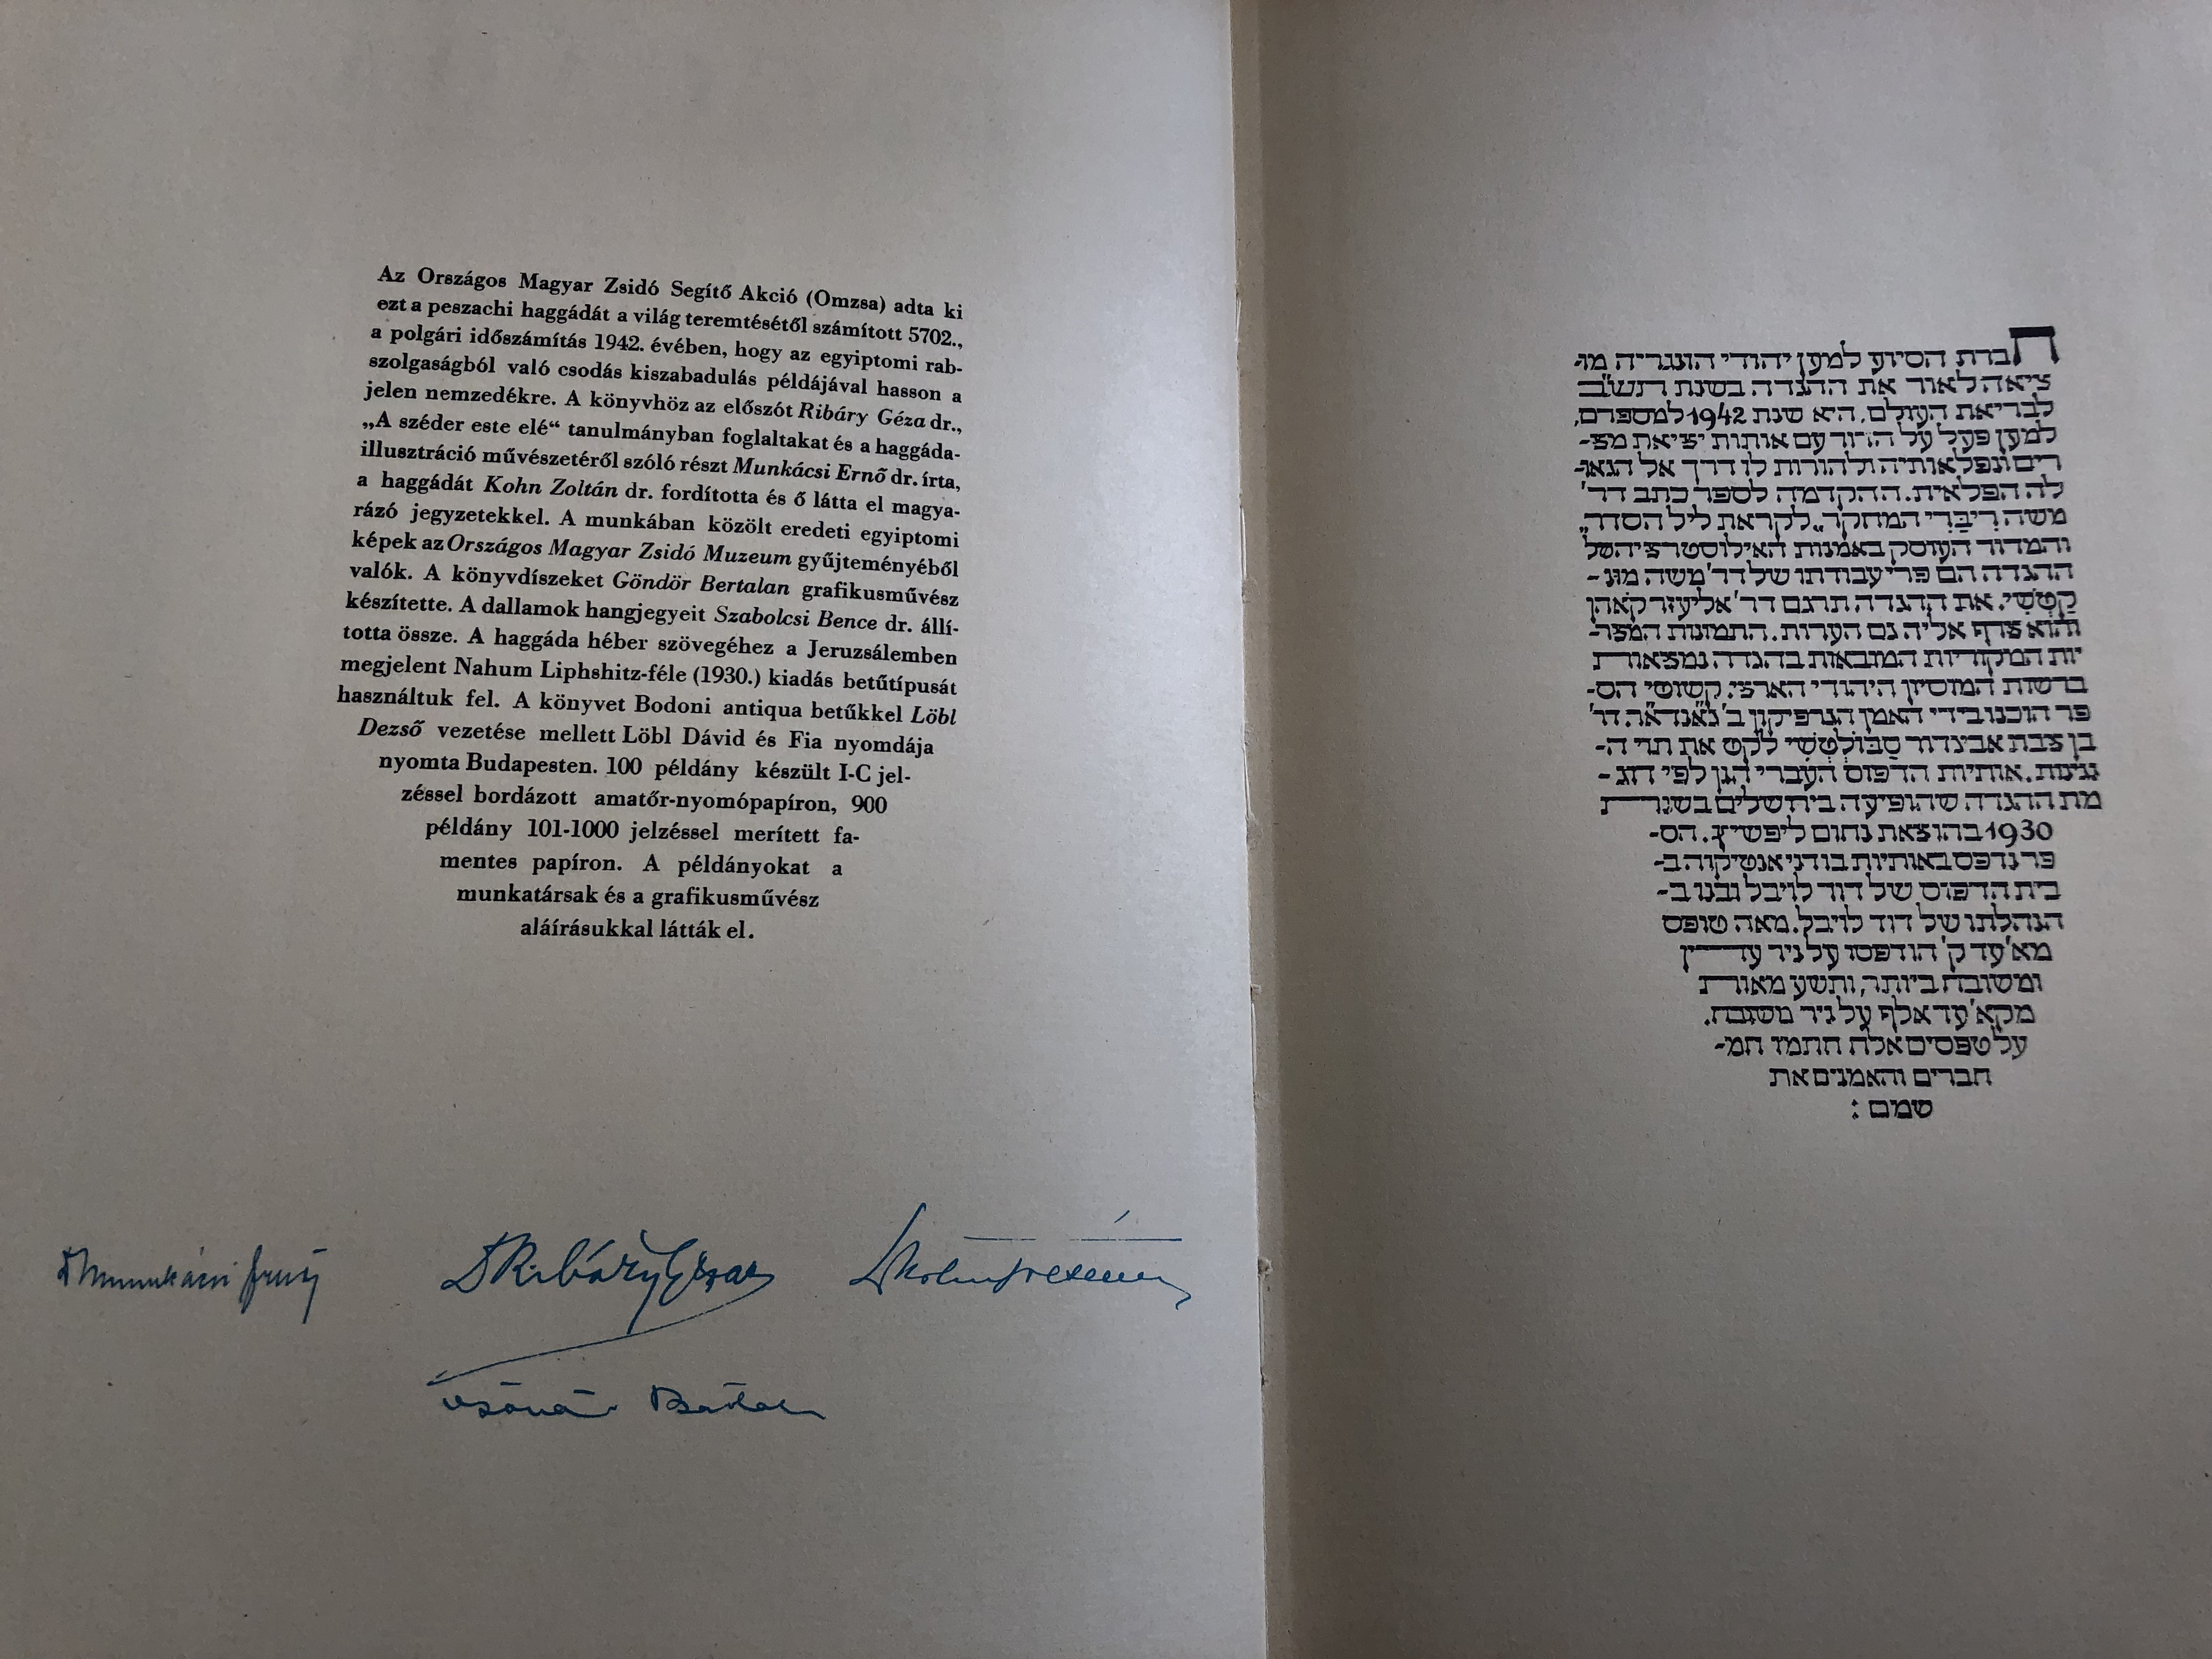 hagg-da-o.m.z.s.a-pesah-haggadah-the-order-of-the-passover-seder-hebrew-hungarian-bilingual-edition-the-story-of-the-exodus-prayers-psalms-and-hyms-translated-by-kohn-zolt-n-4-.jpg